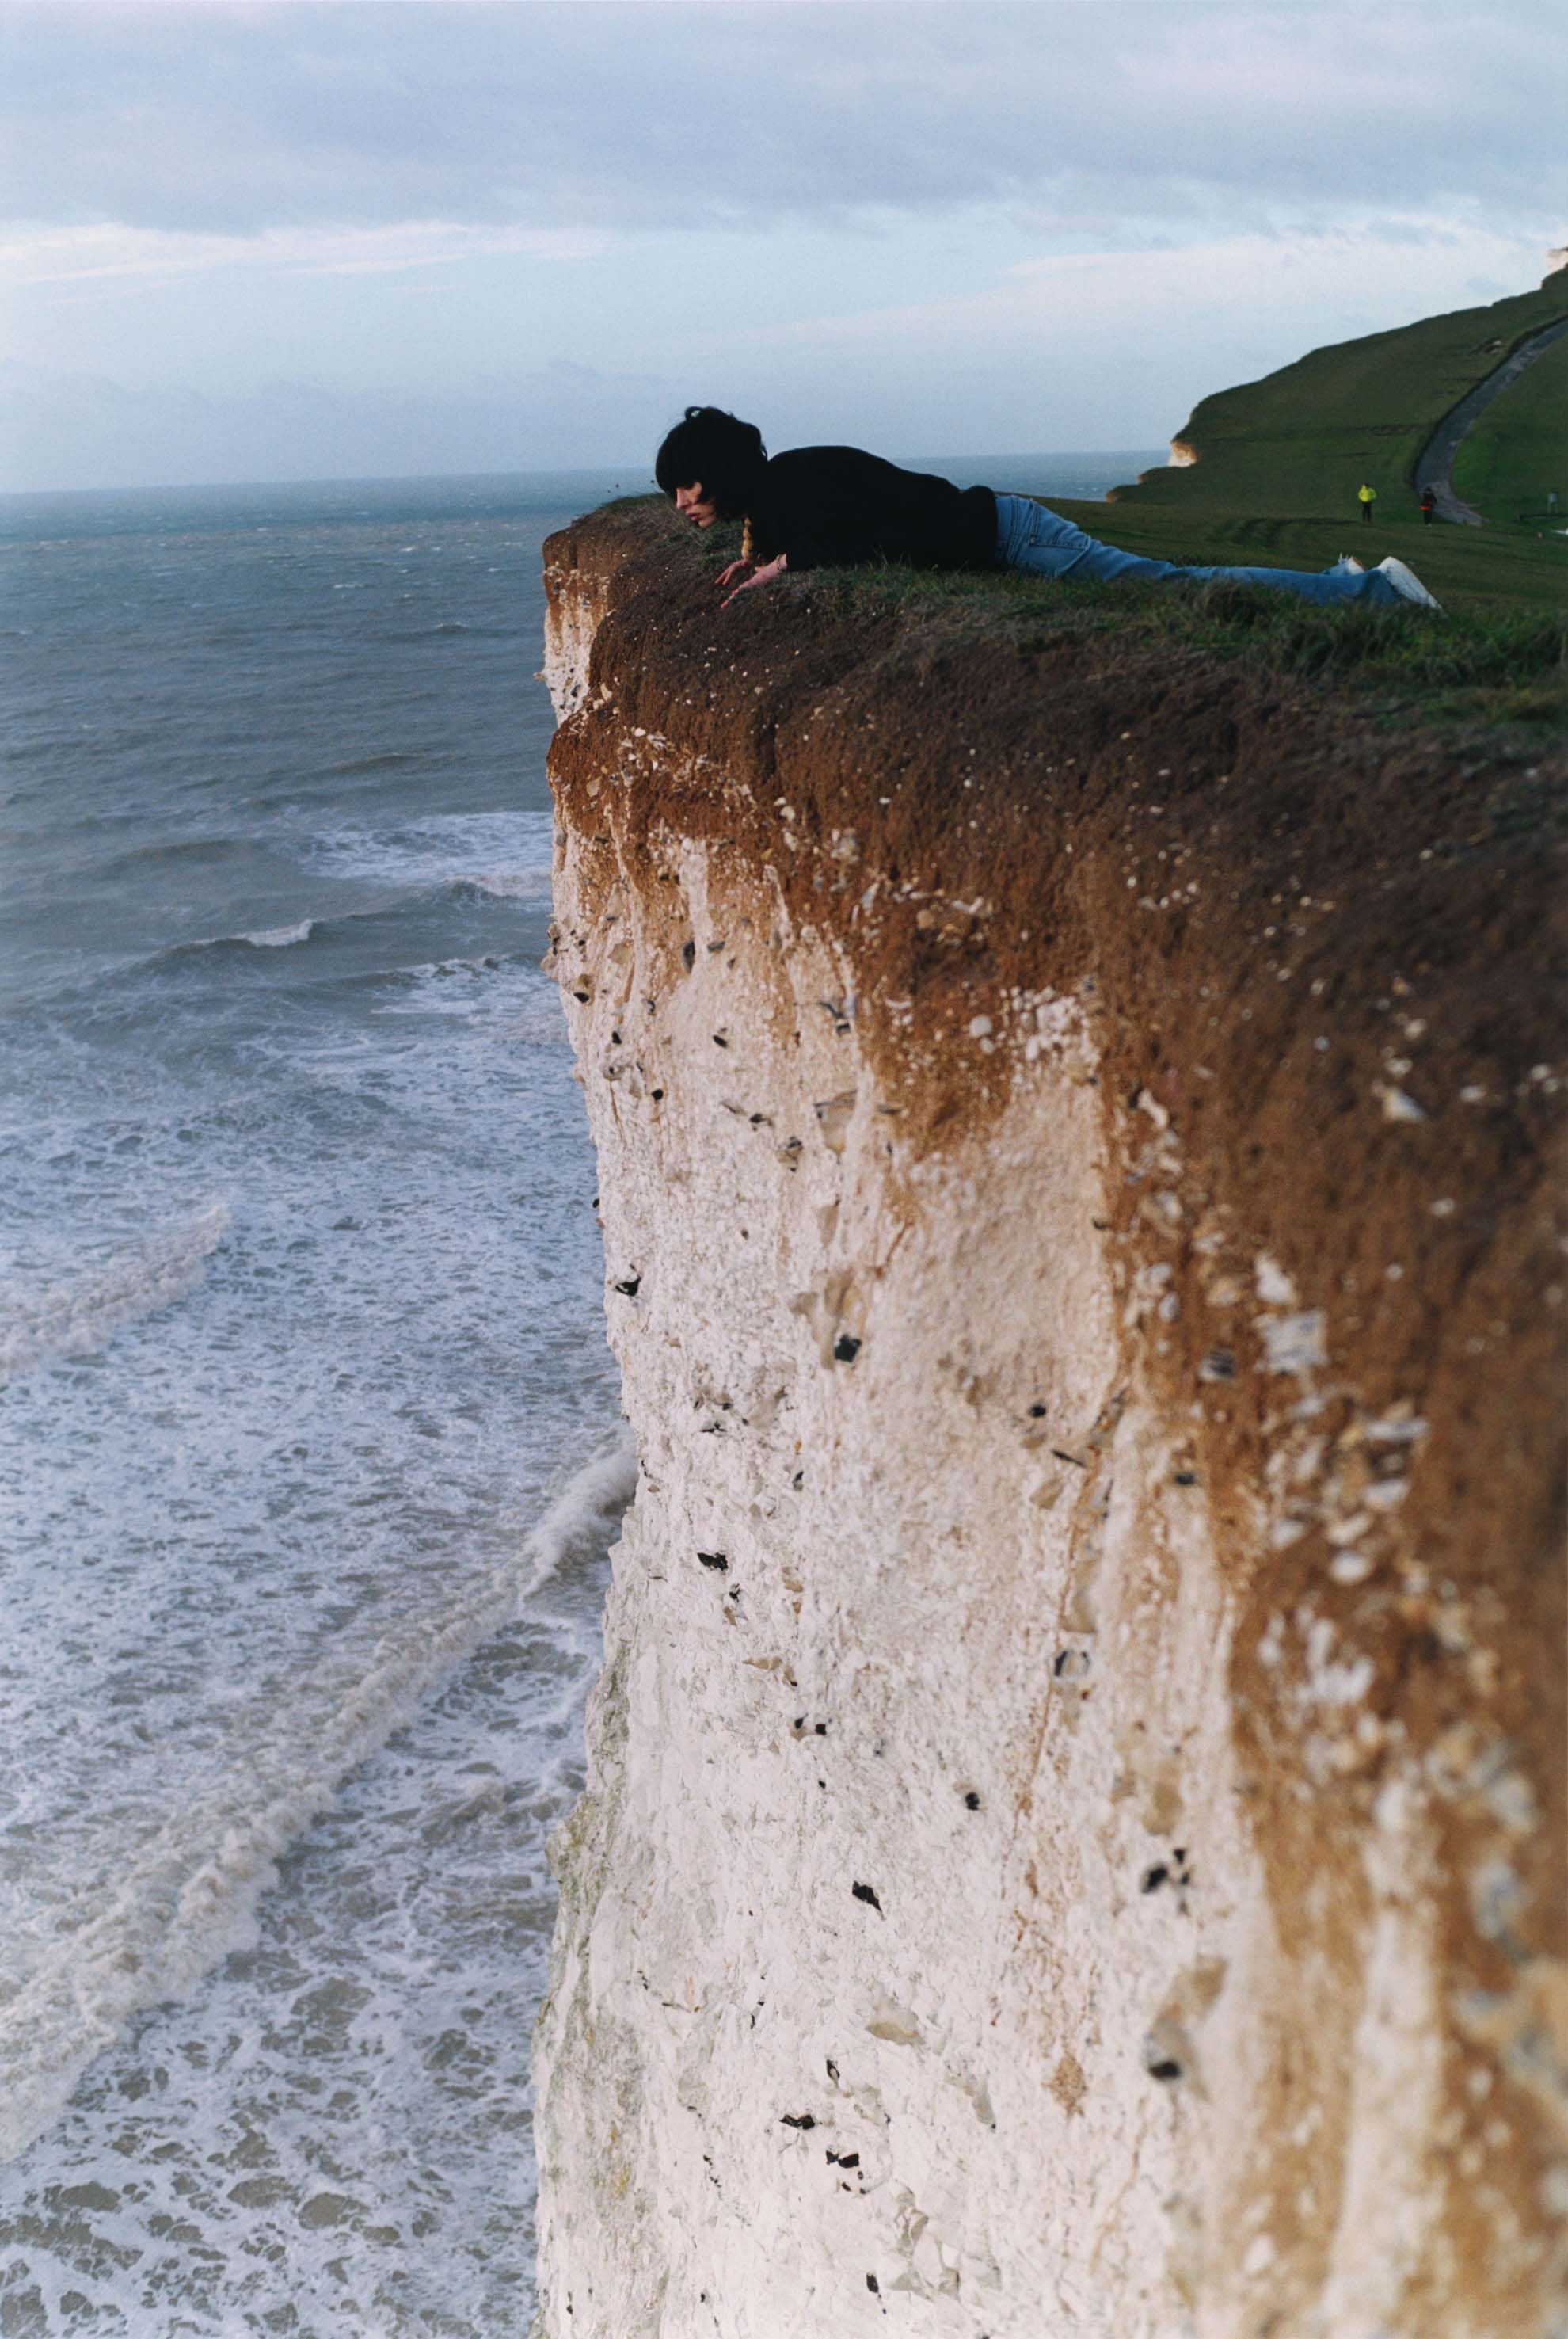 a photo of a woman lying on the top of a cliff peering over the edge